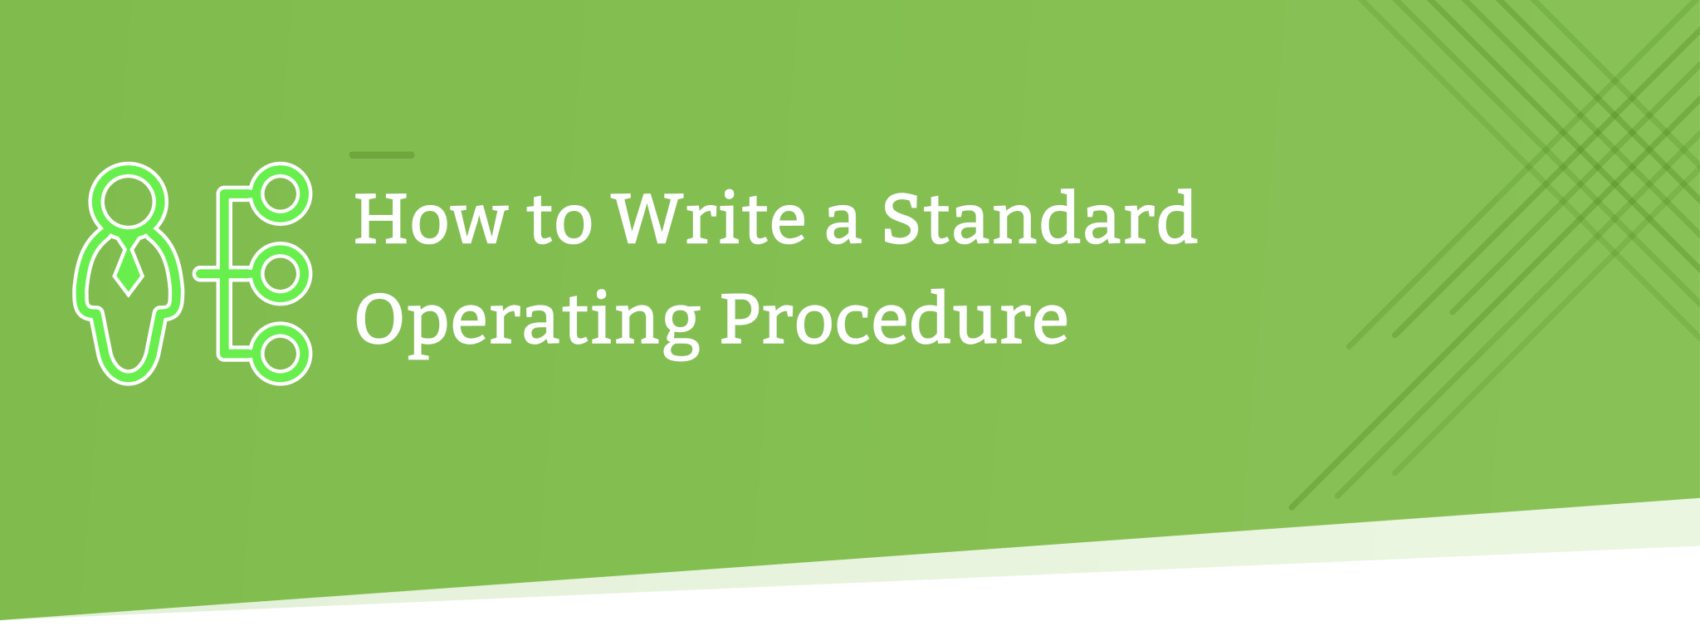 How to Write a Standard Operating Procedure [5 Easy Steps] - Tallyfy